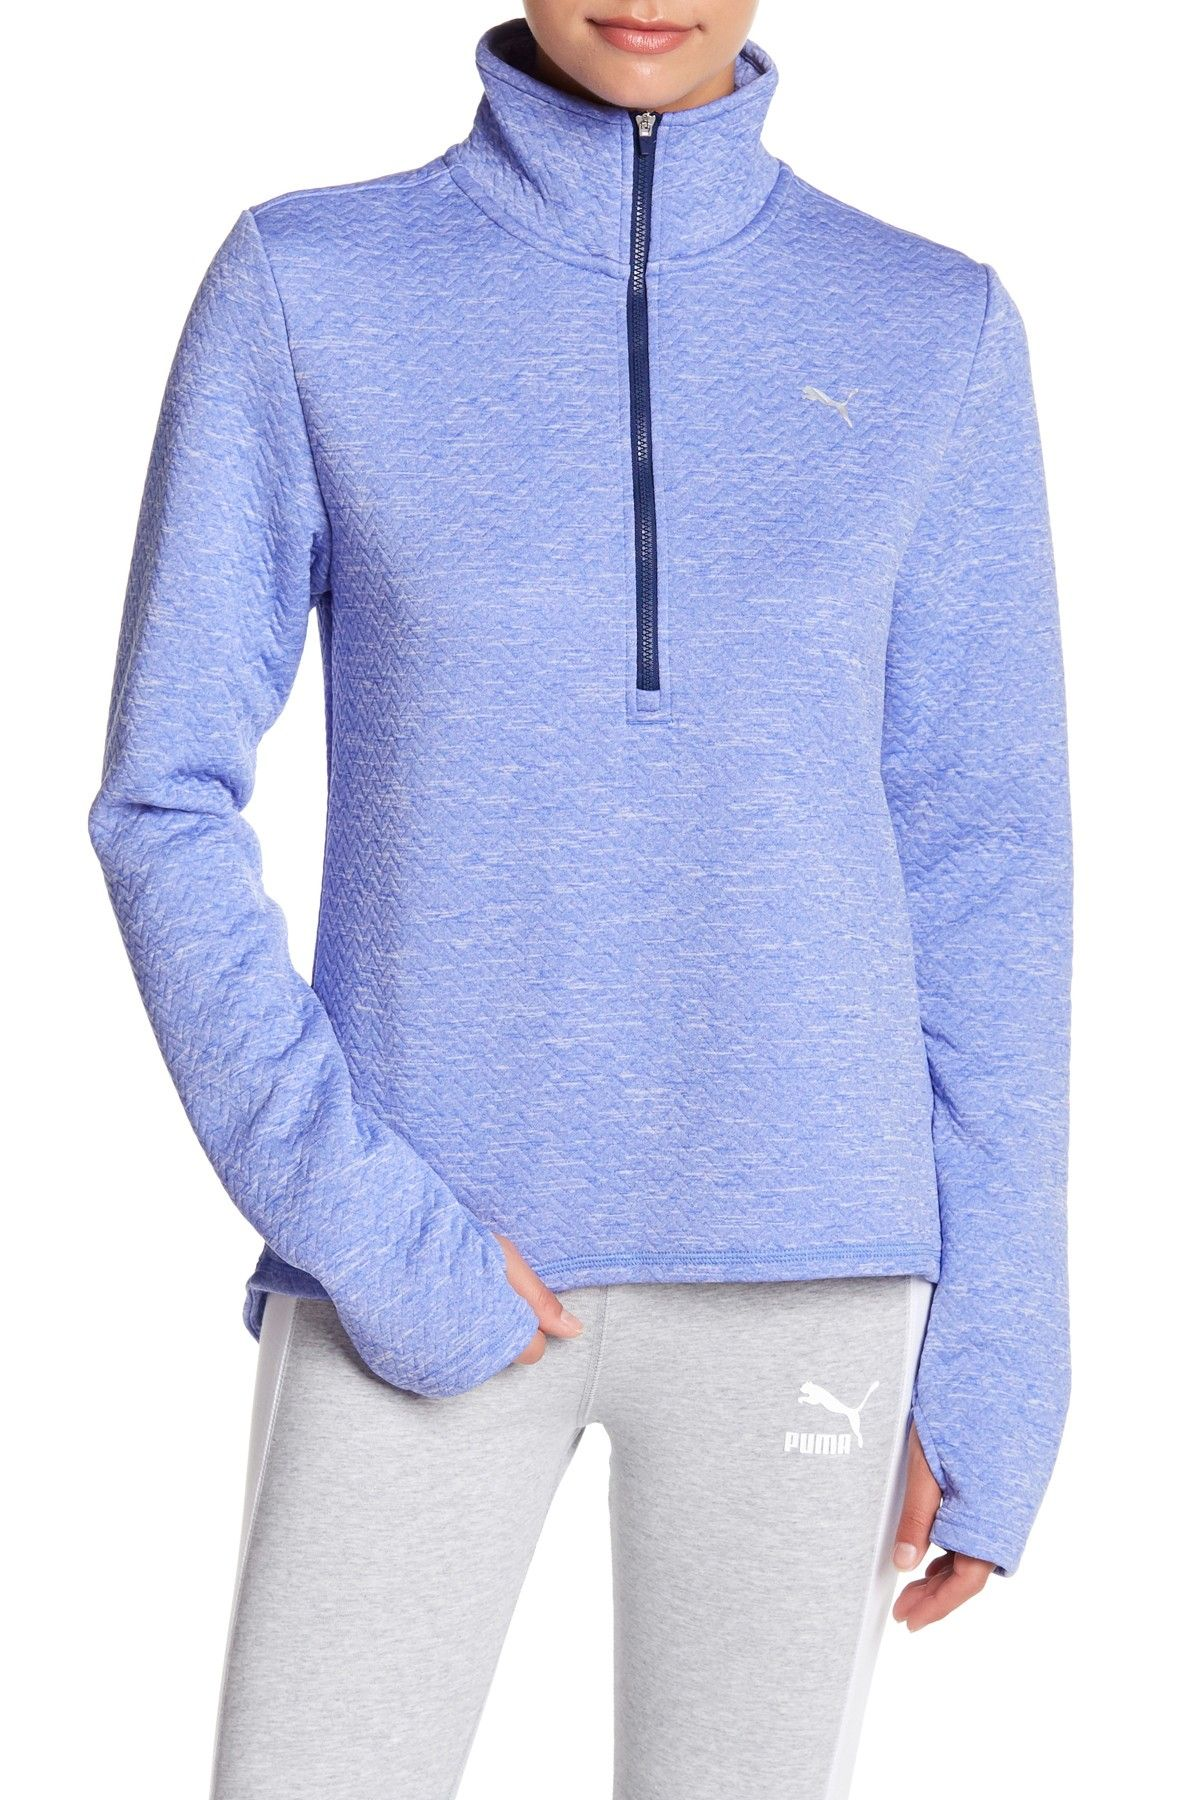 PUMA Nocturnal 3/4 Zip Jacket Jackets, Fit women, Hoodies